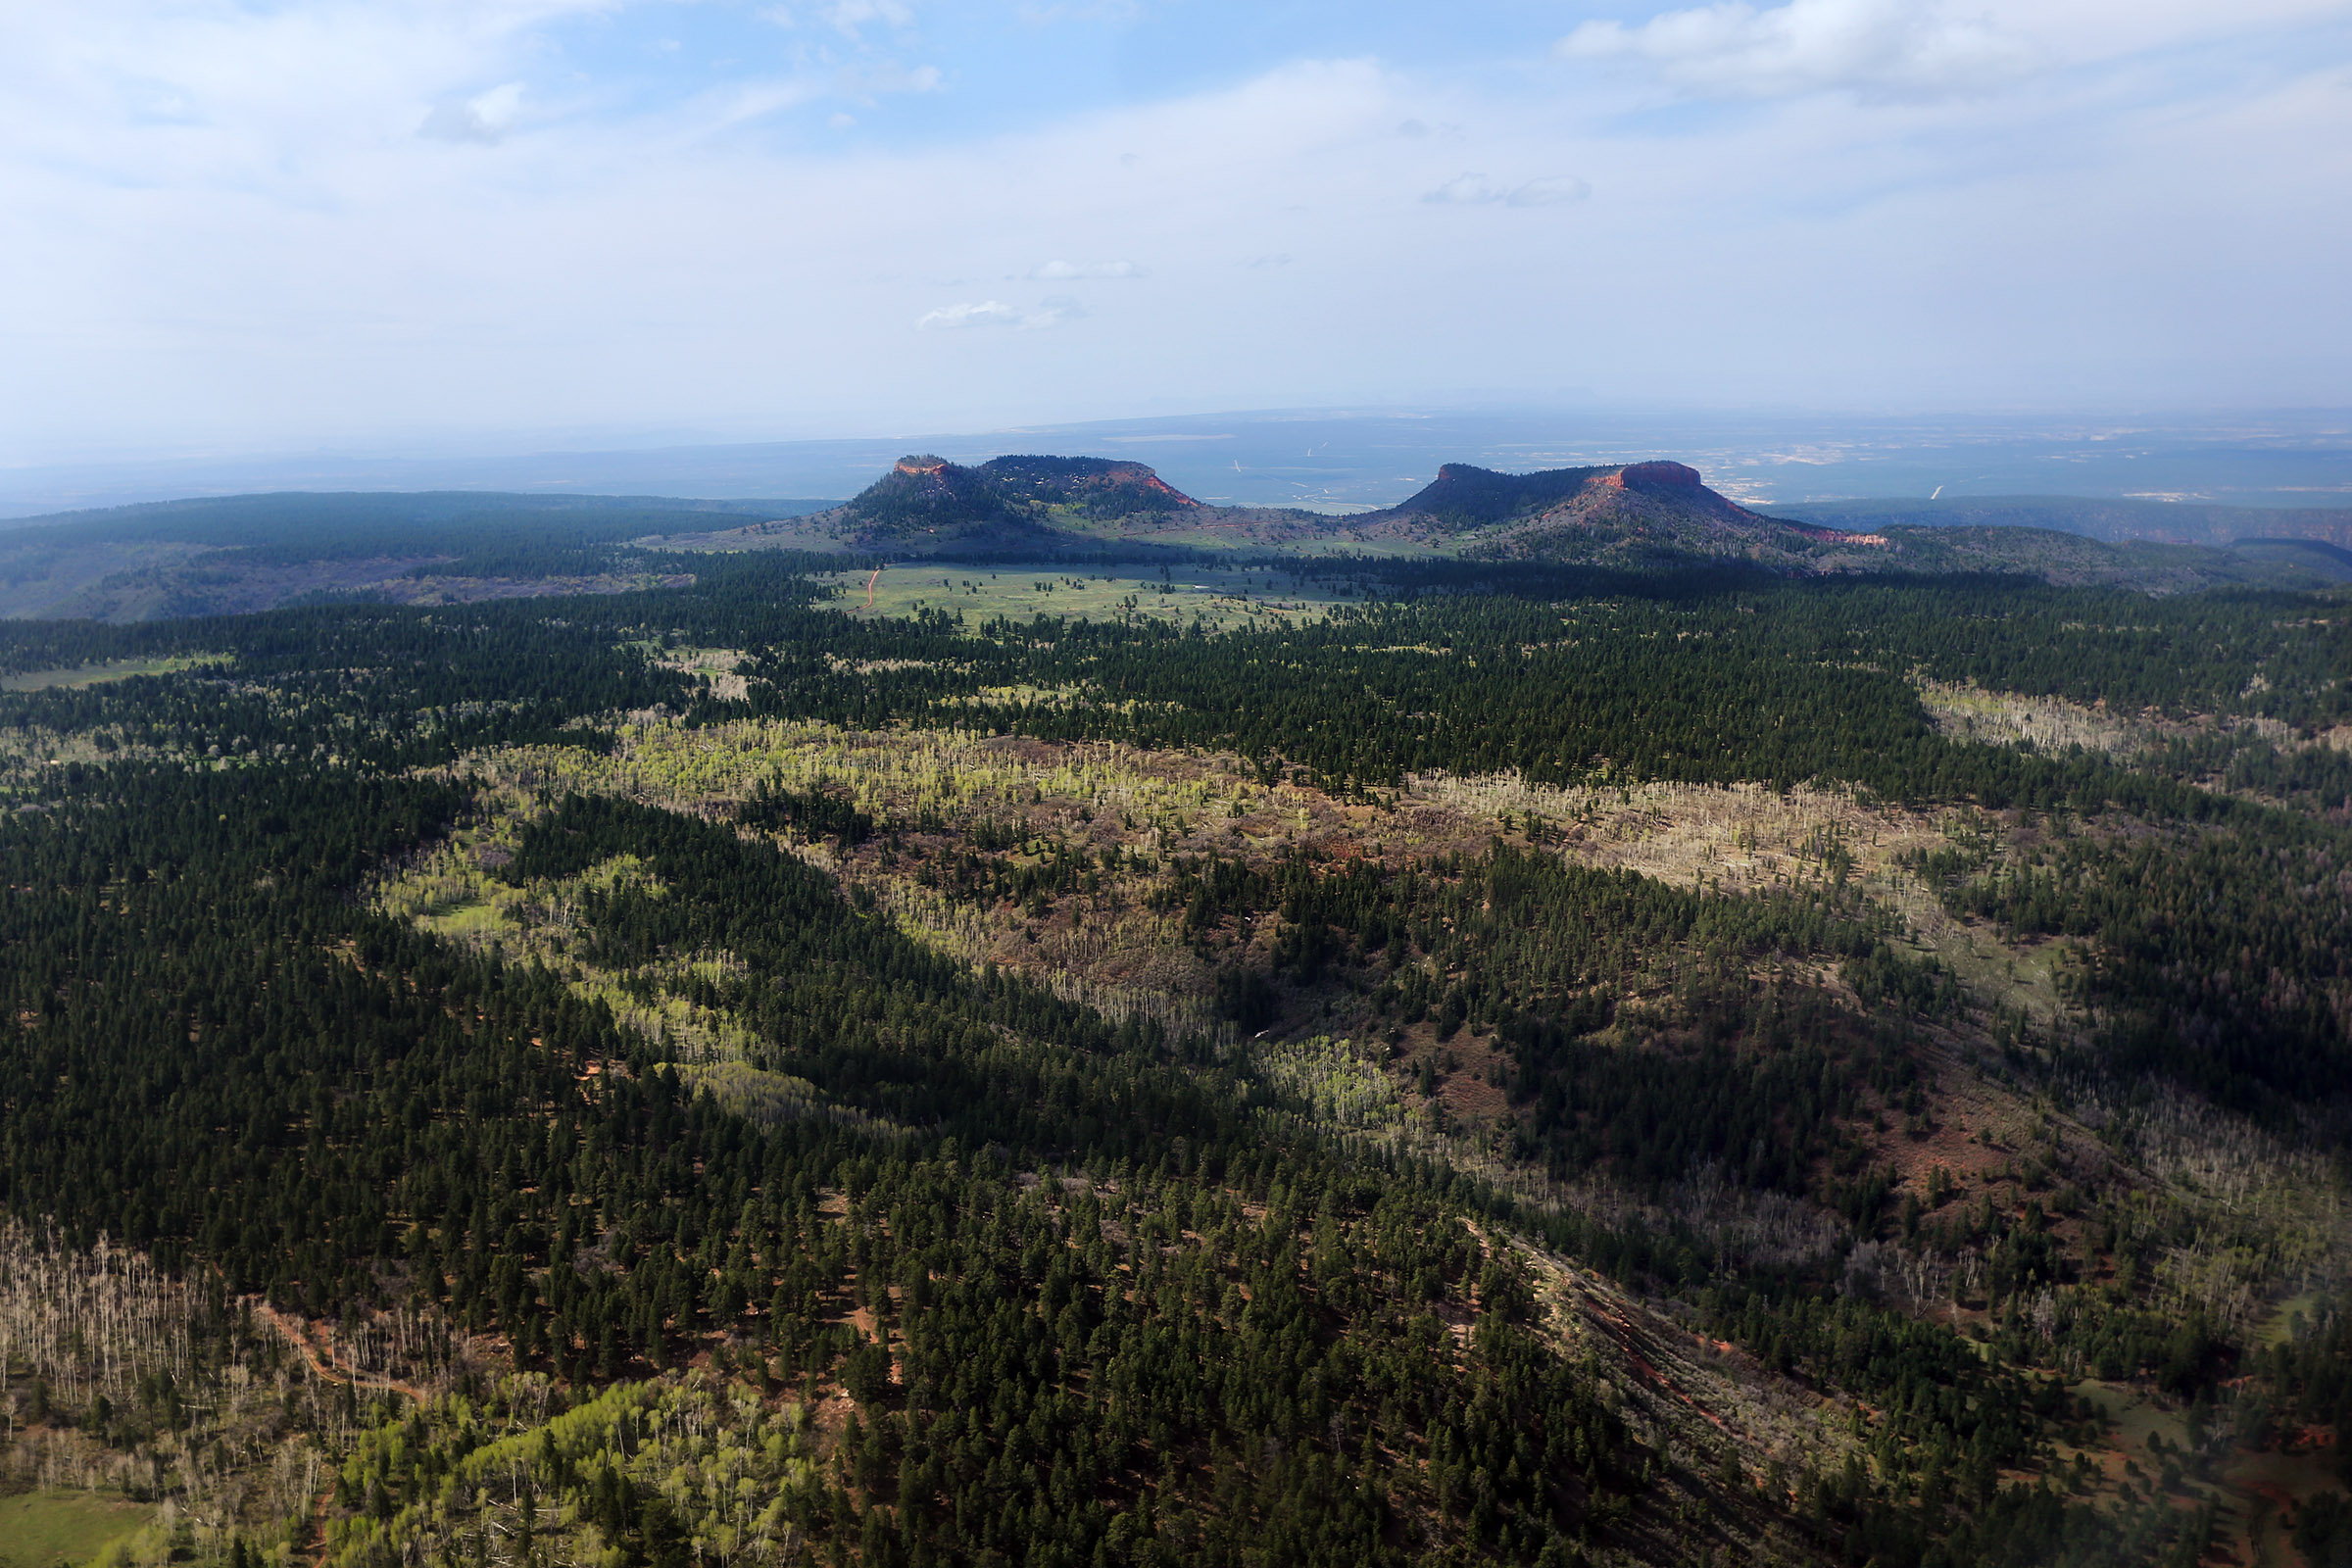 The Bears Ears of the Bears Ears National Monument are pictured from the air.